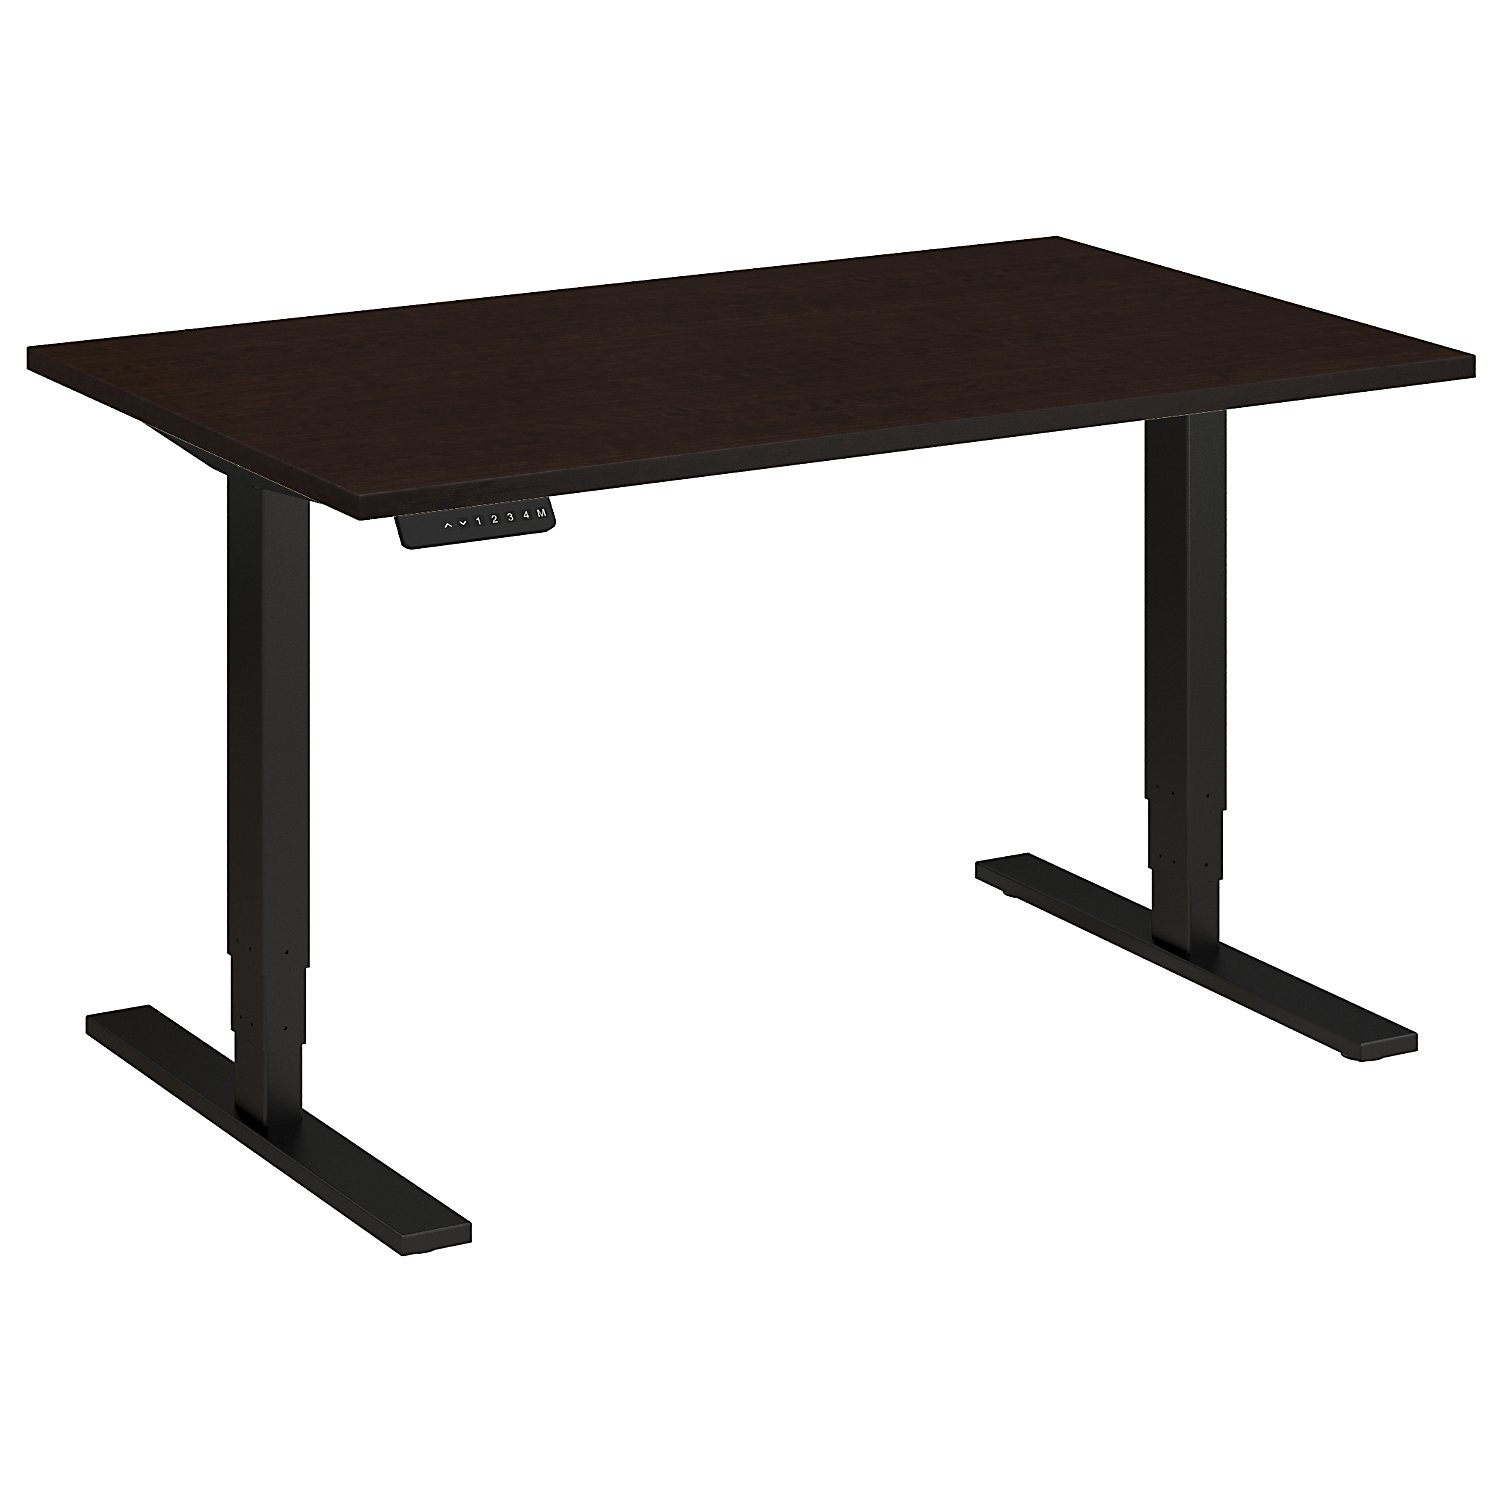 Adjustable Height Computer Desk - Height Adjustable Table Sit Stand Desks